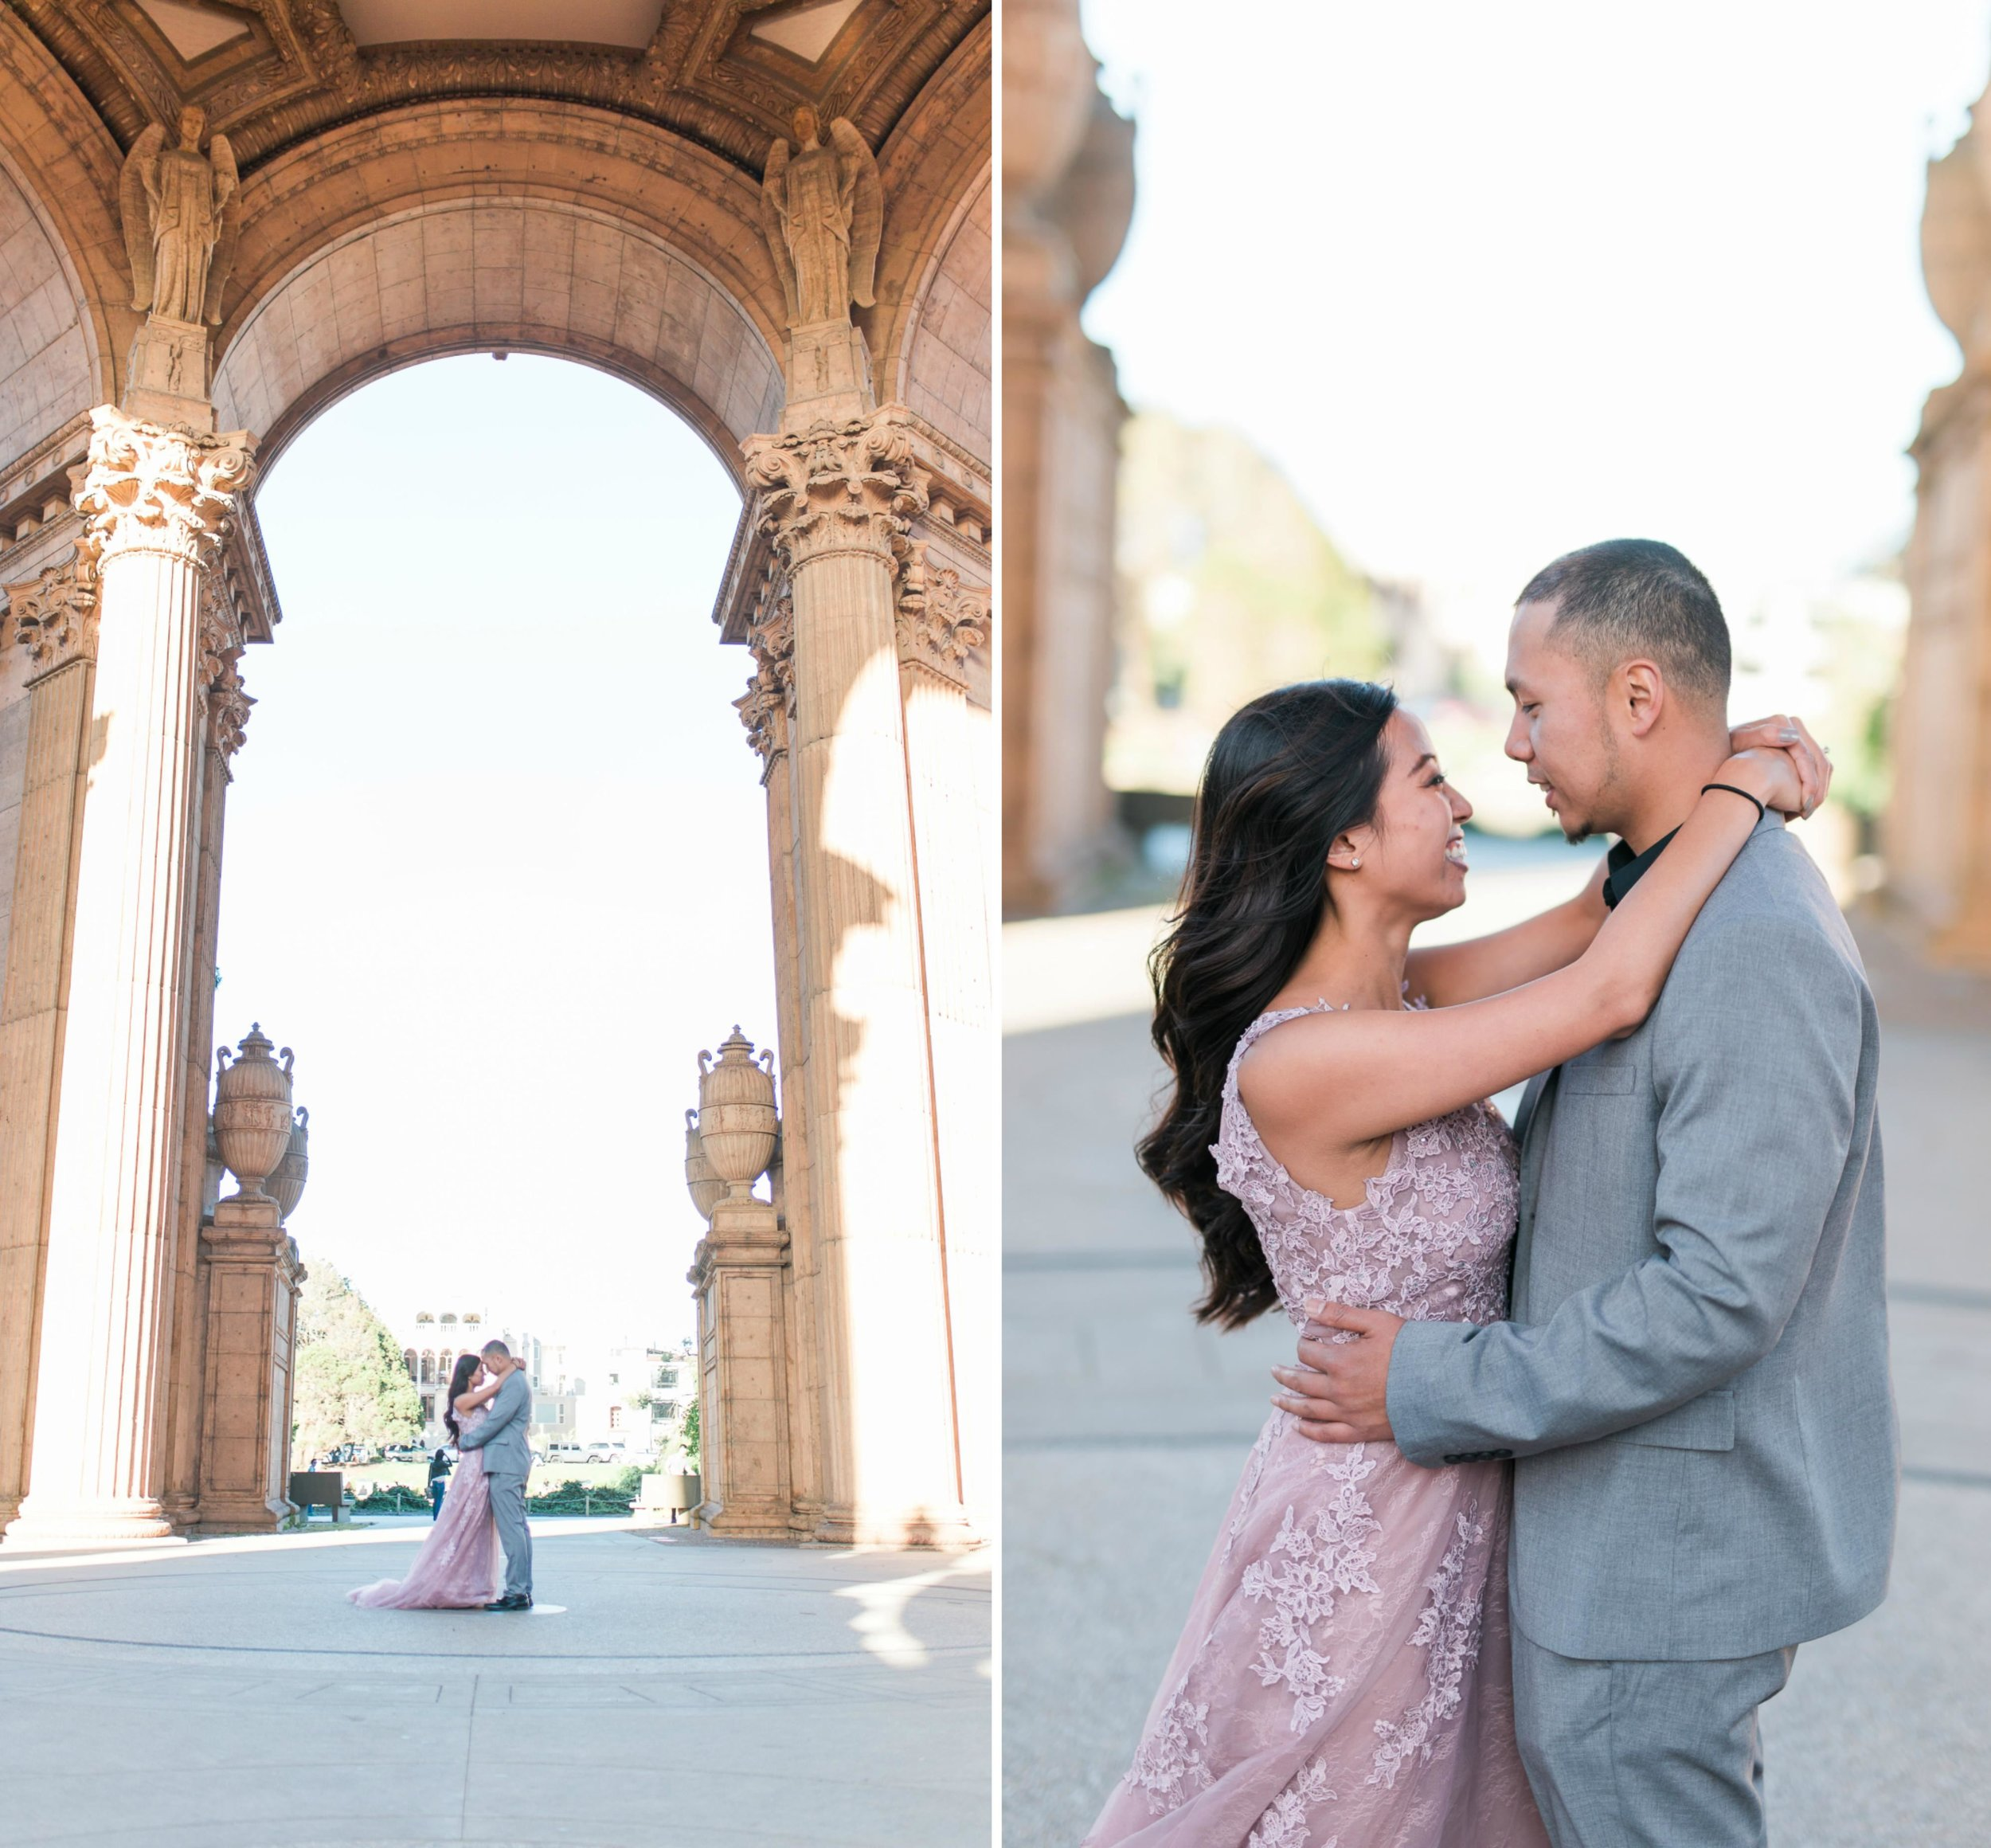 Palace of Fine Arts Engagement Photos - Lover's Lane San Francisco Engagement Session by JBJ Pictures Wedding Photographer in San Francisco (15).jpg